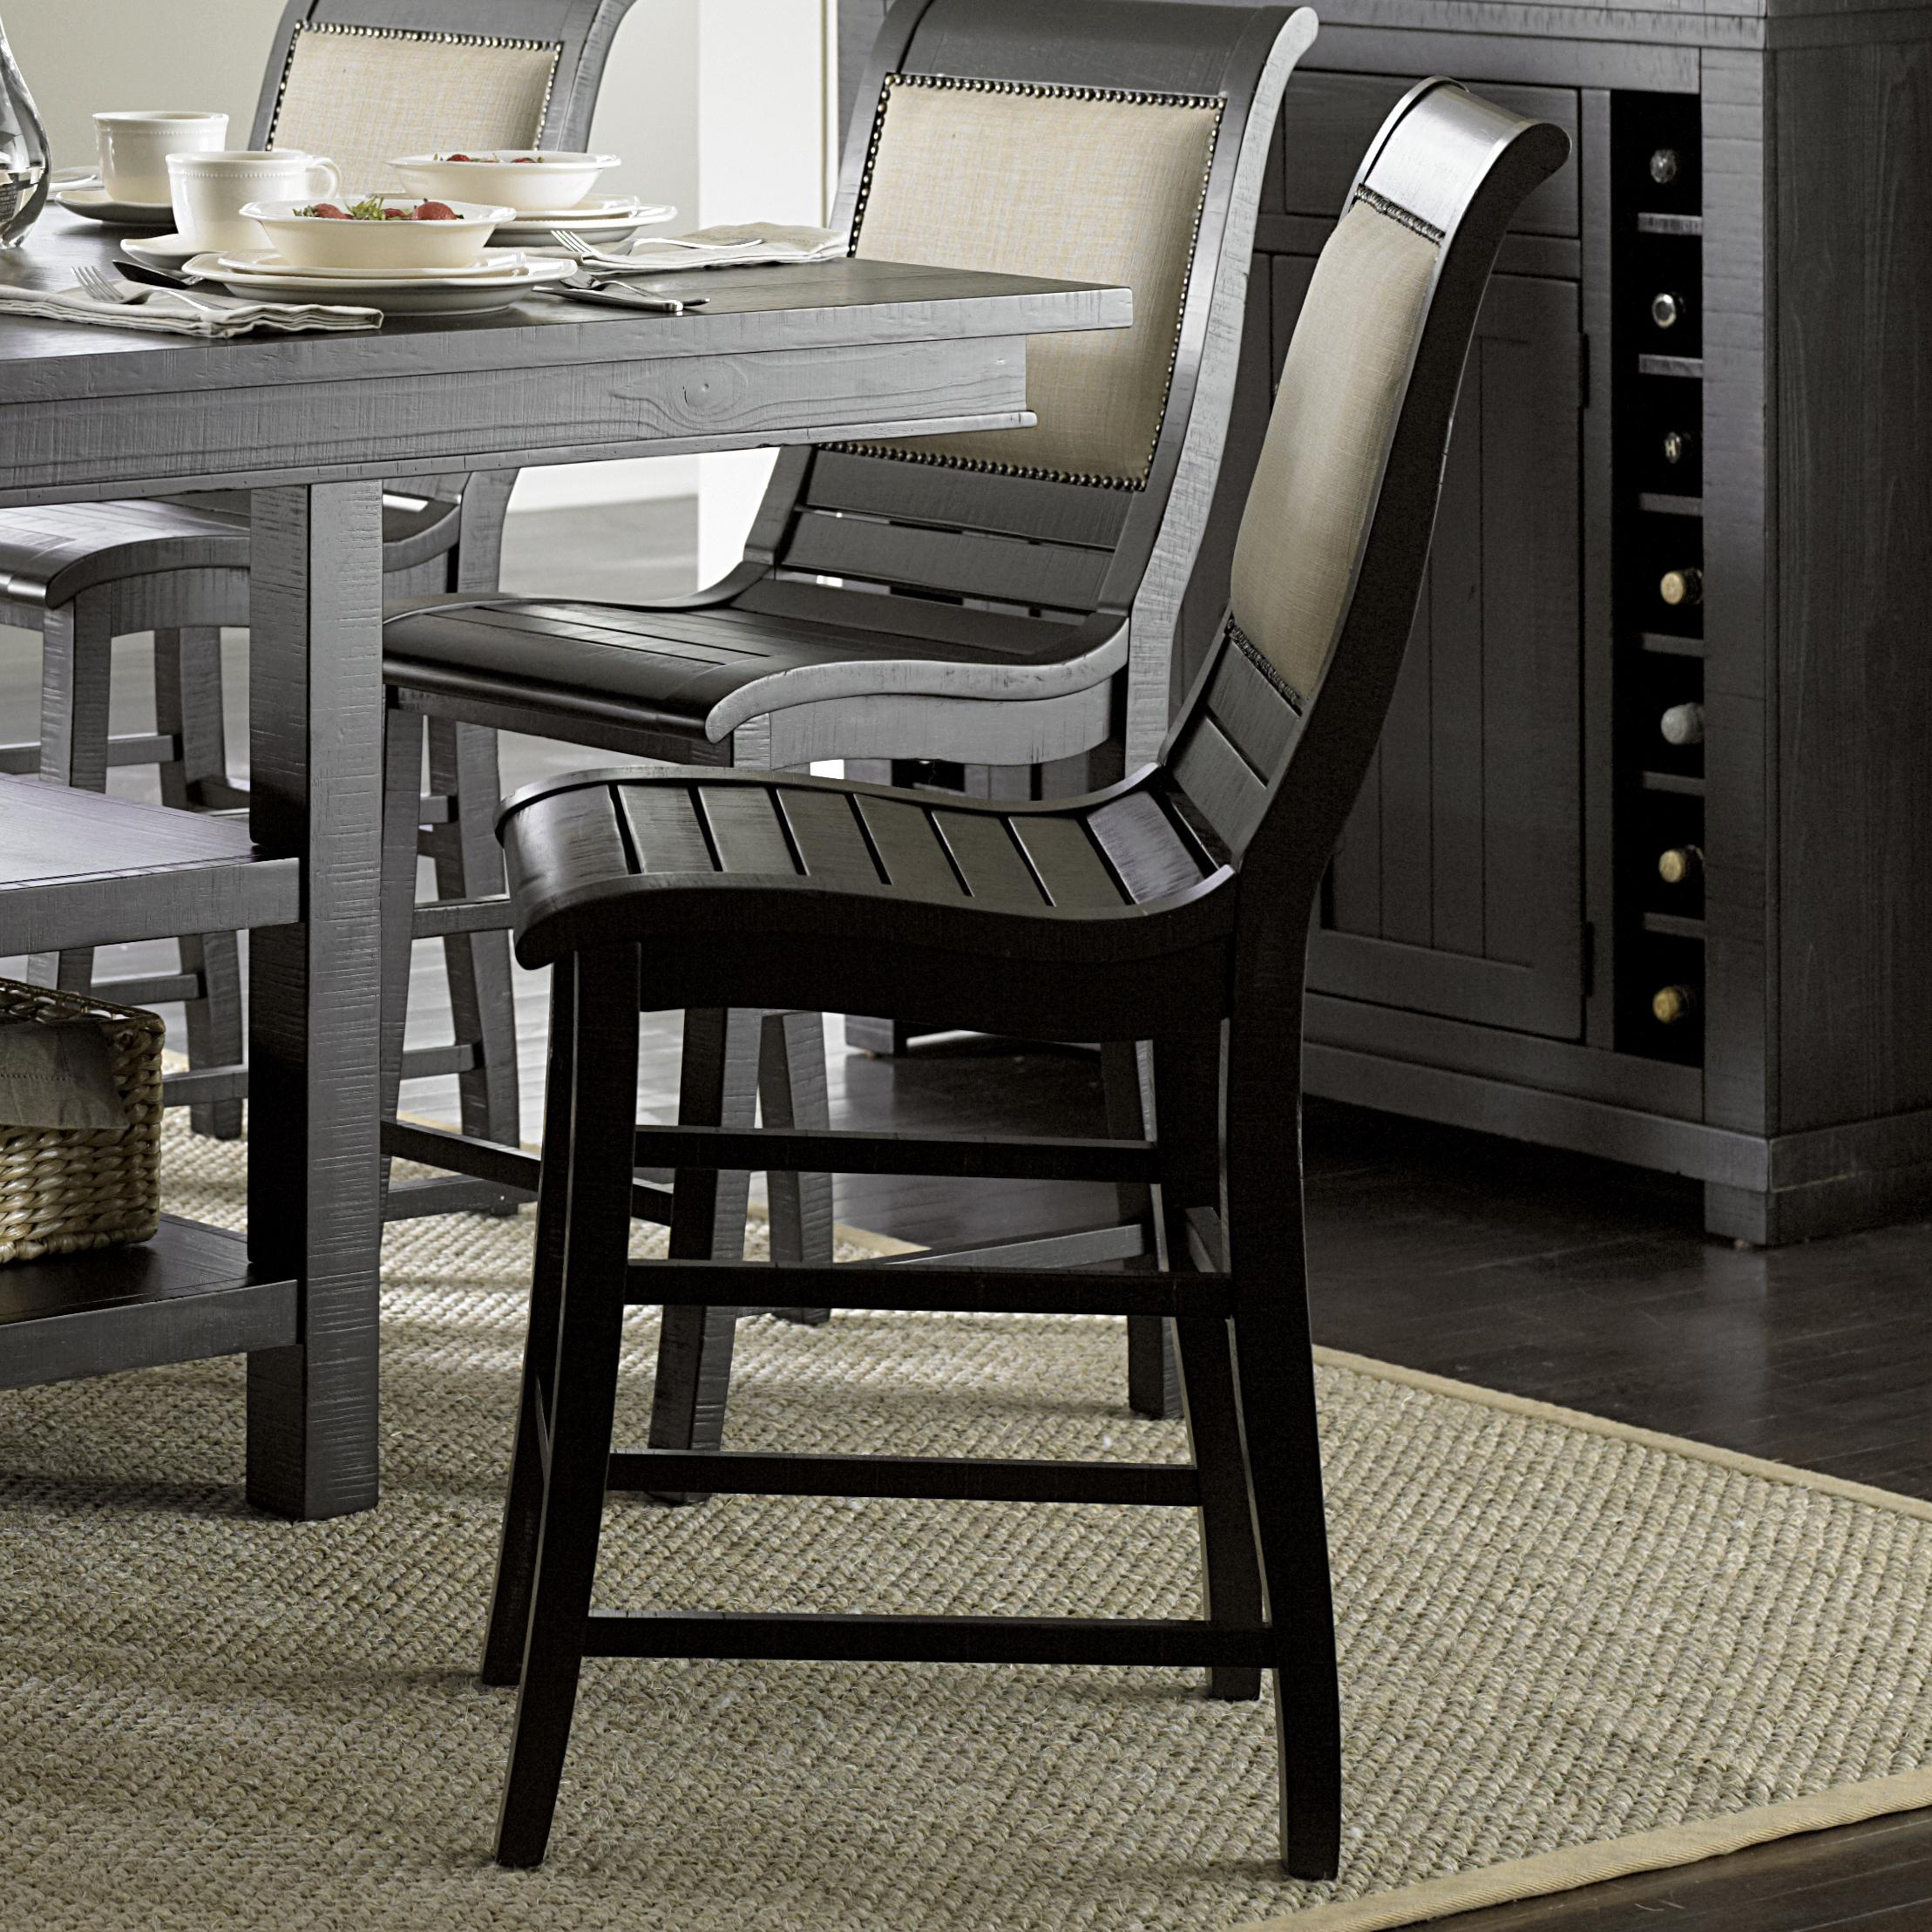 Counter Upholstered Chair